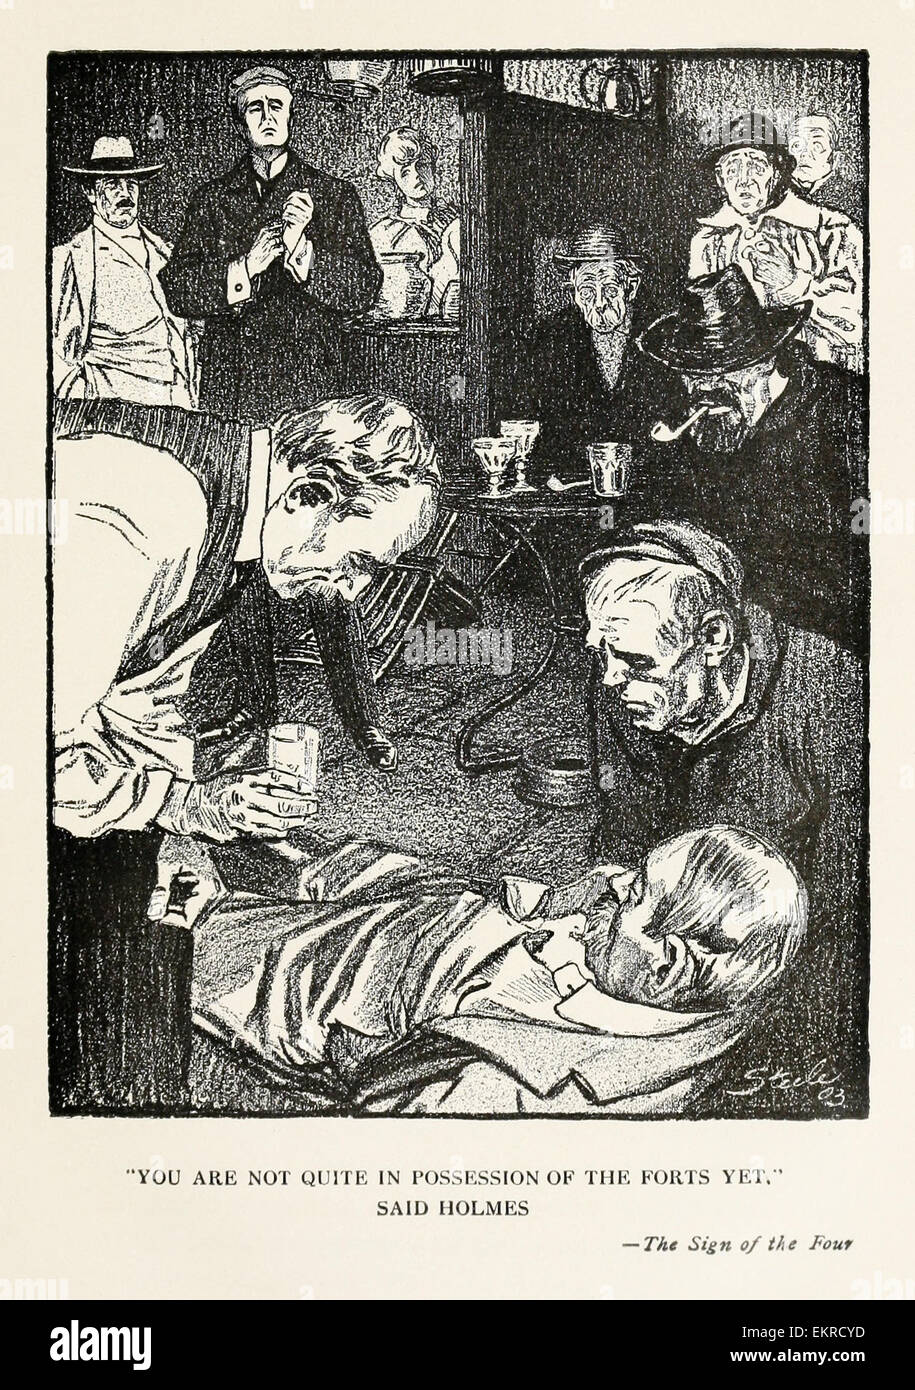 'You are not quite in possession of the forts yet.' Said Holmes - Illustration by Frederic Dorr Steele (1873 - Stock Image